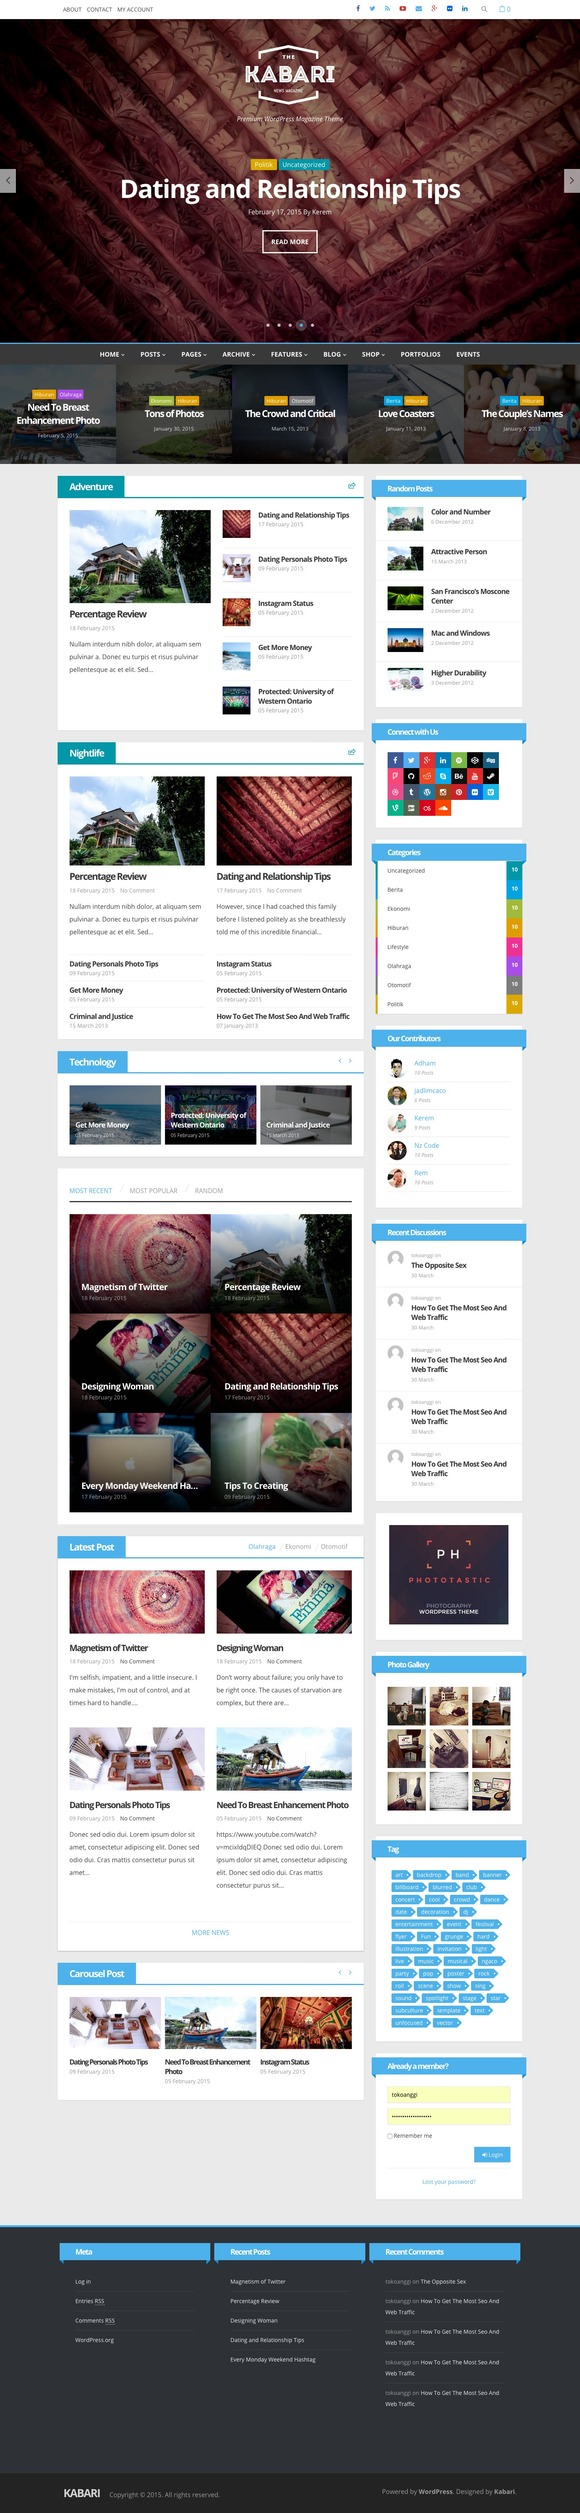 Kabari News Magazine Theme